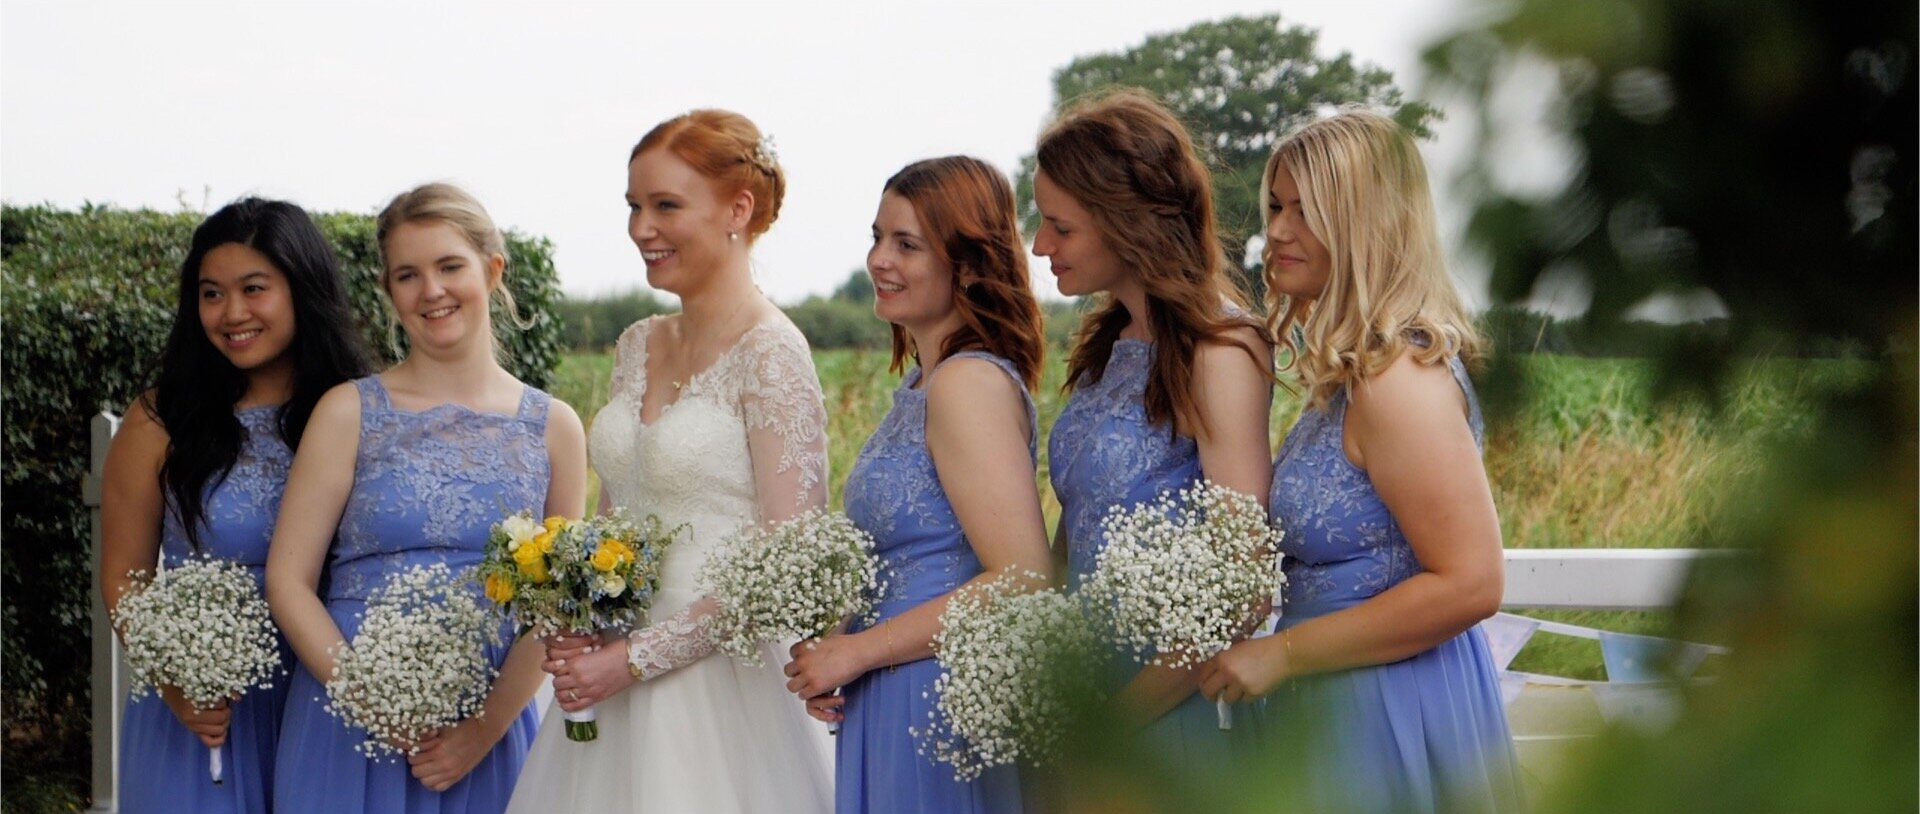 The bridesmaids at the compasses video.jpg